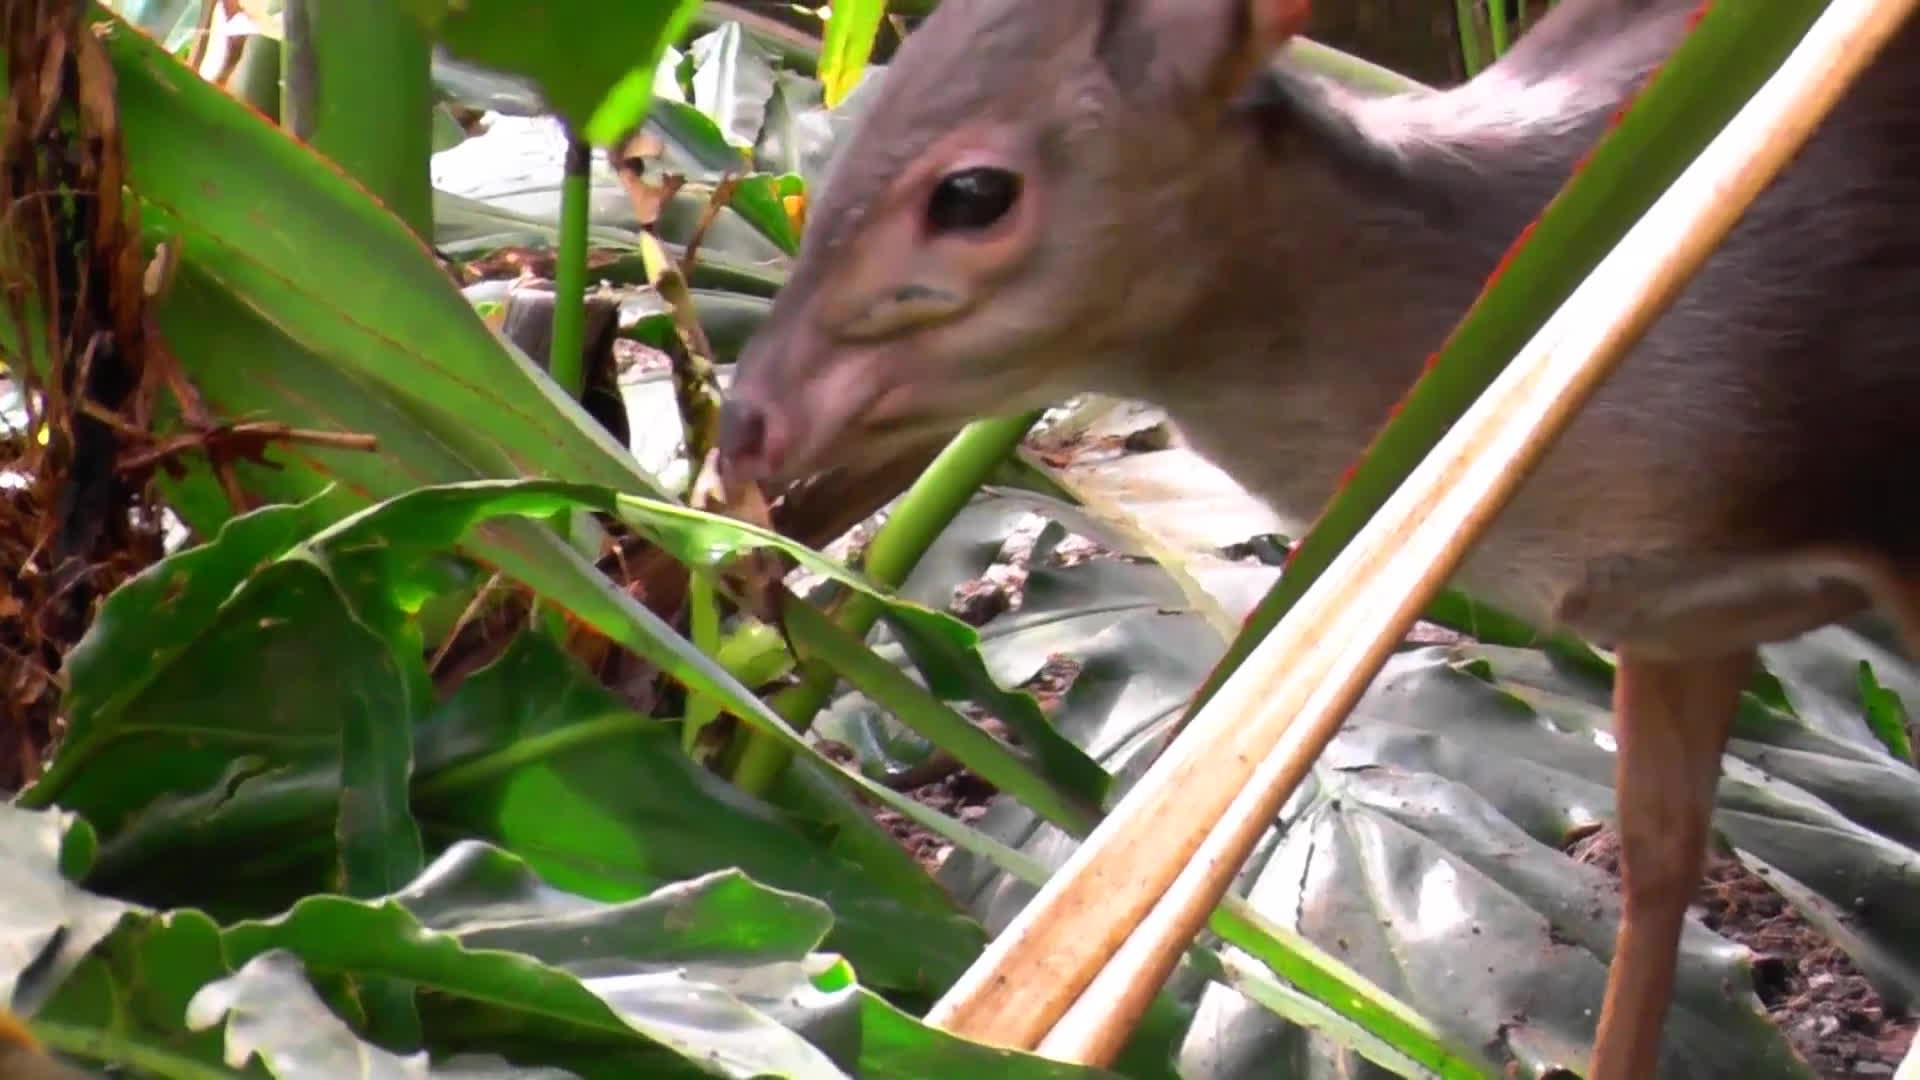 Awwducational, cute antelope, duiker, Cute blue duiker - the smallest antelope in South Africa GIFs